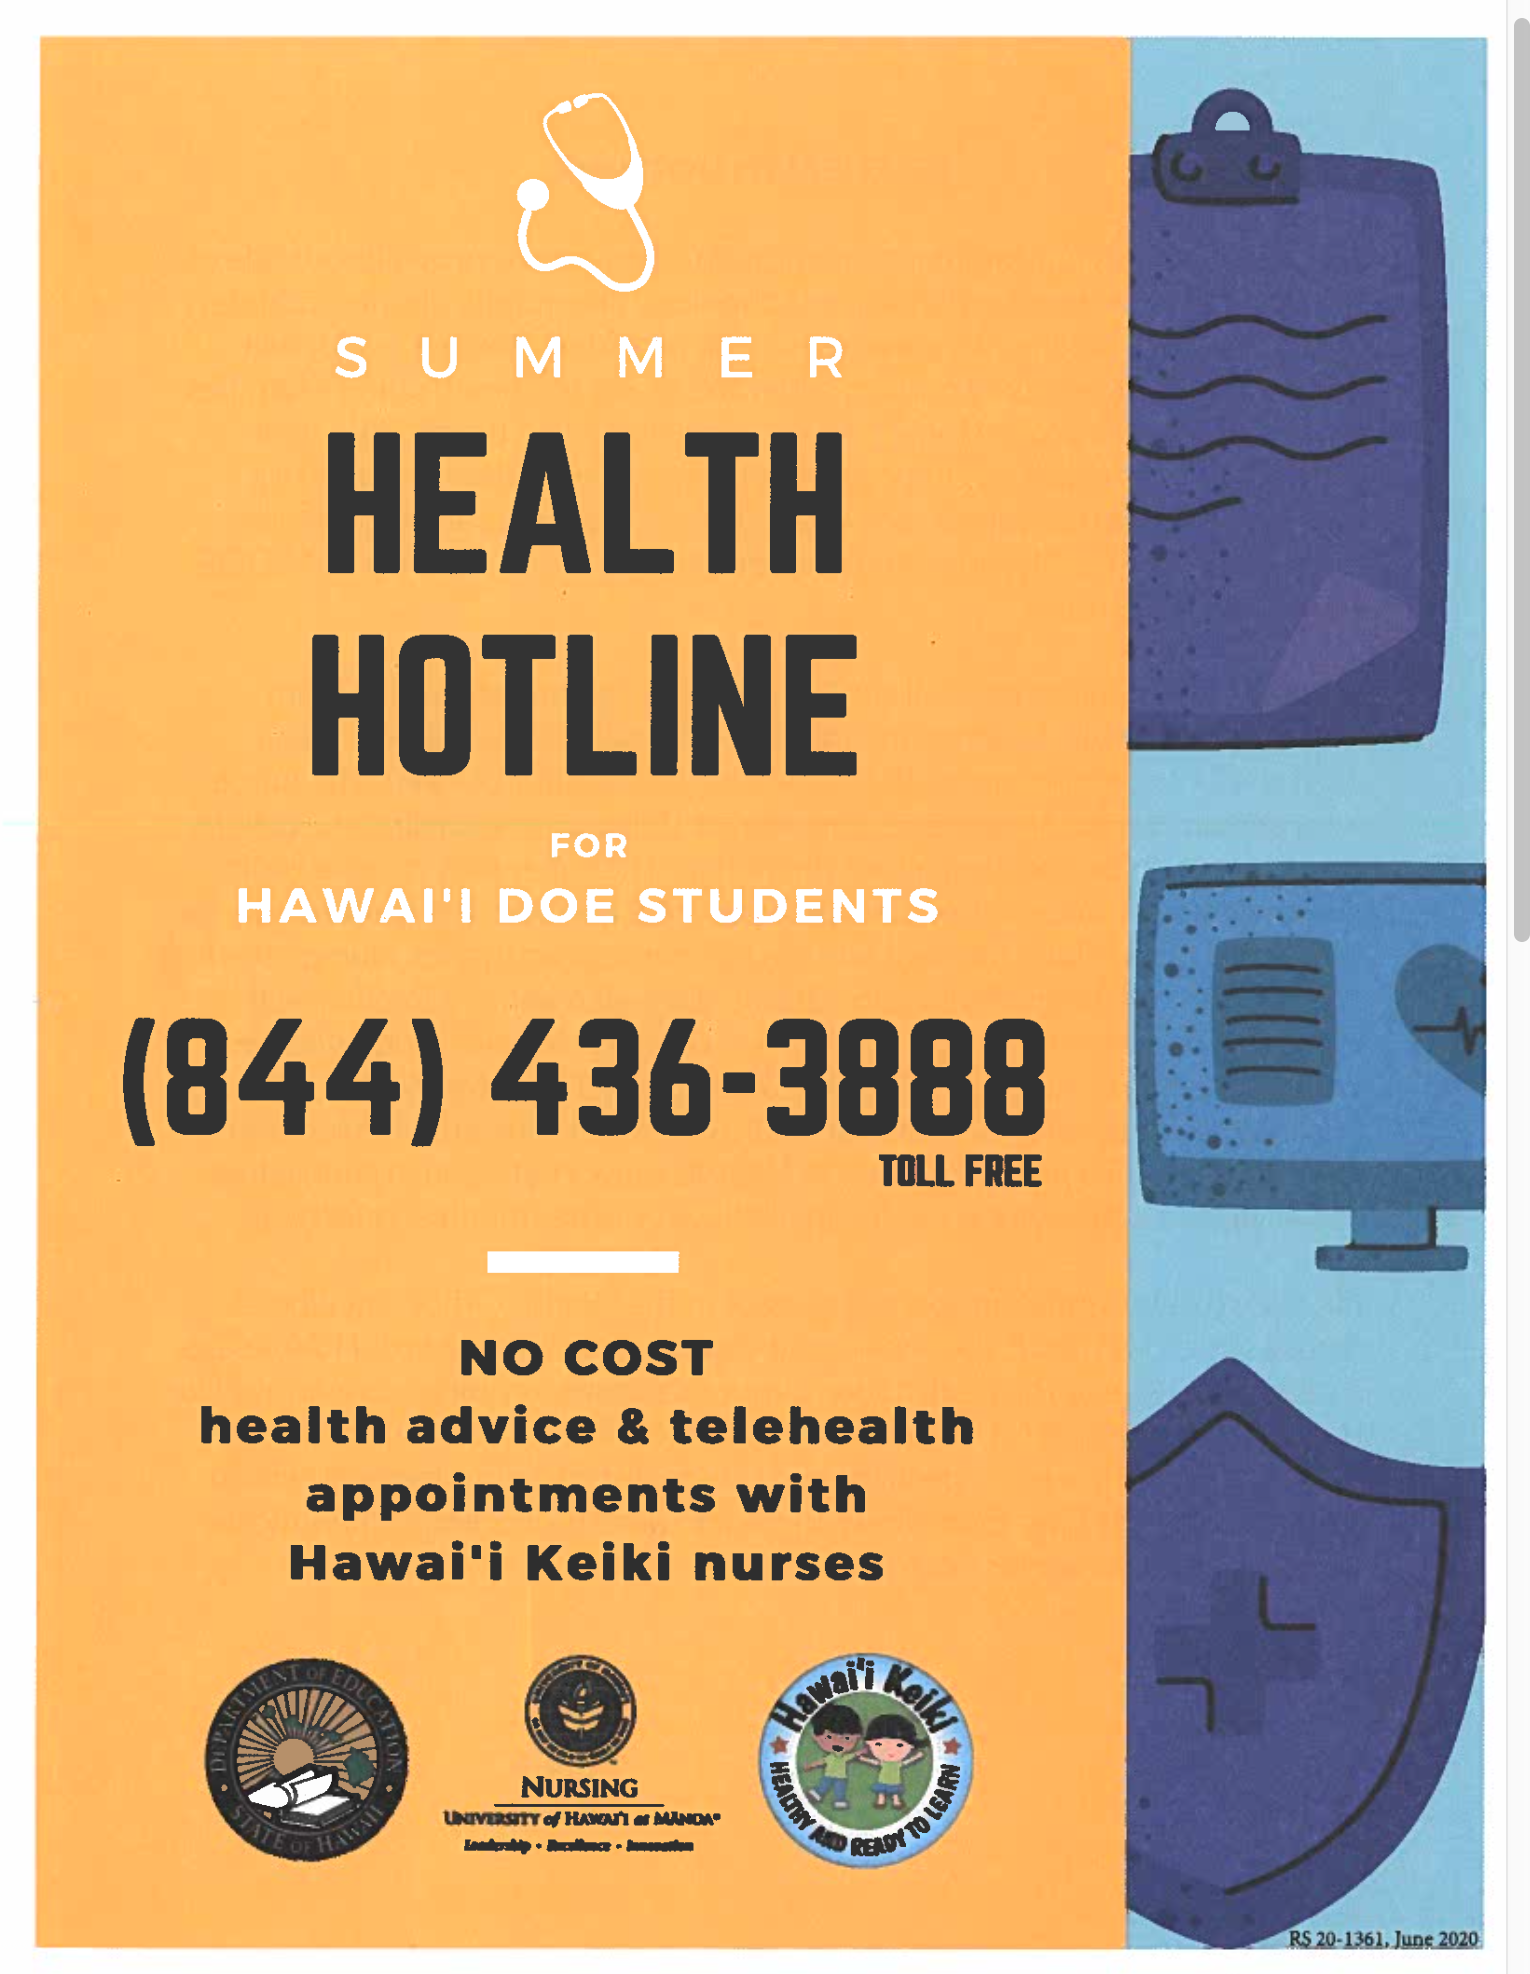 Summer Health Hotline - 844-436-3888